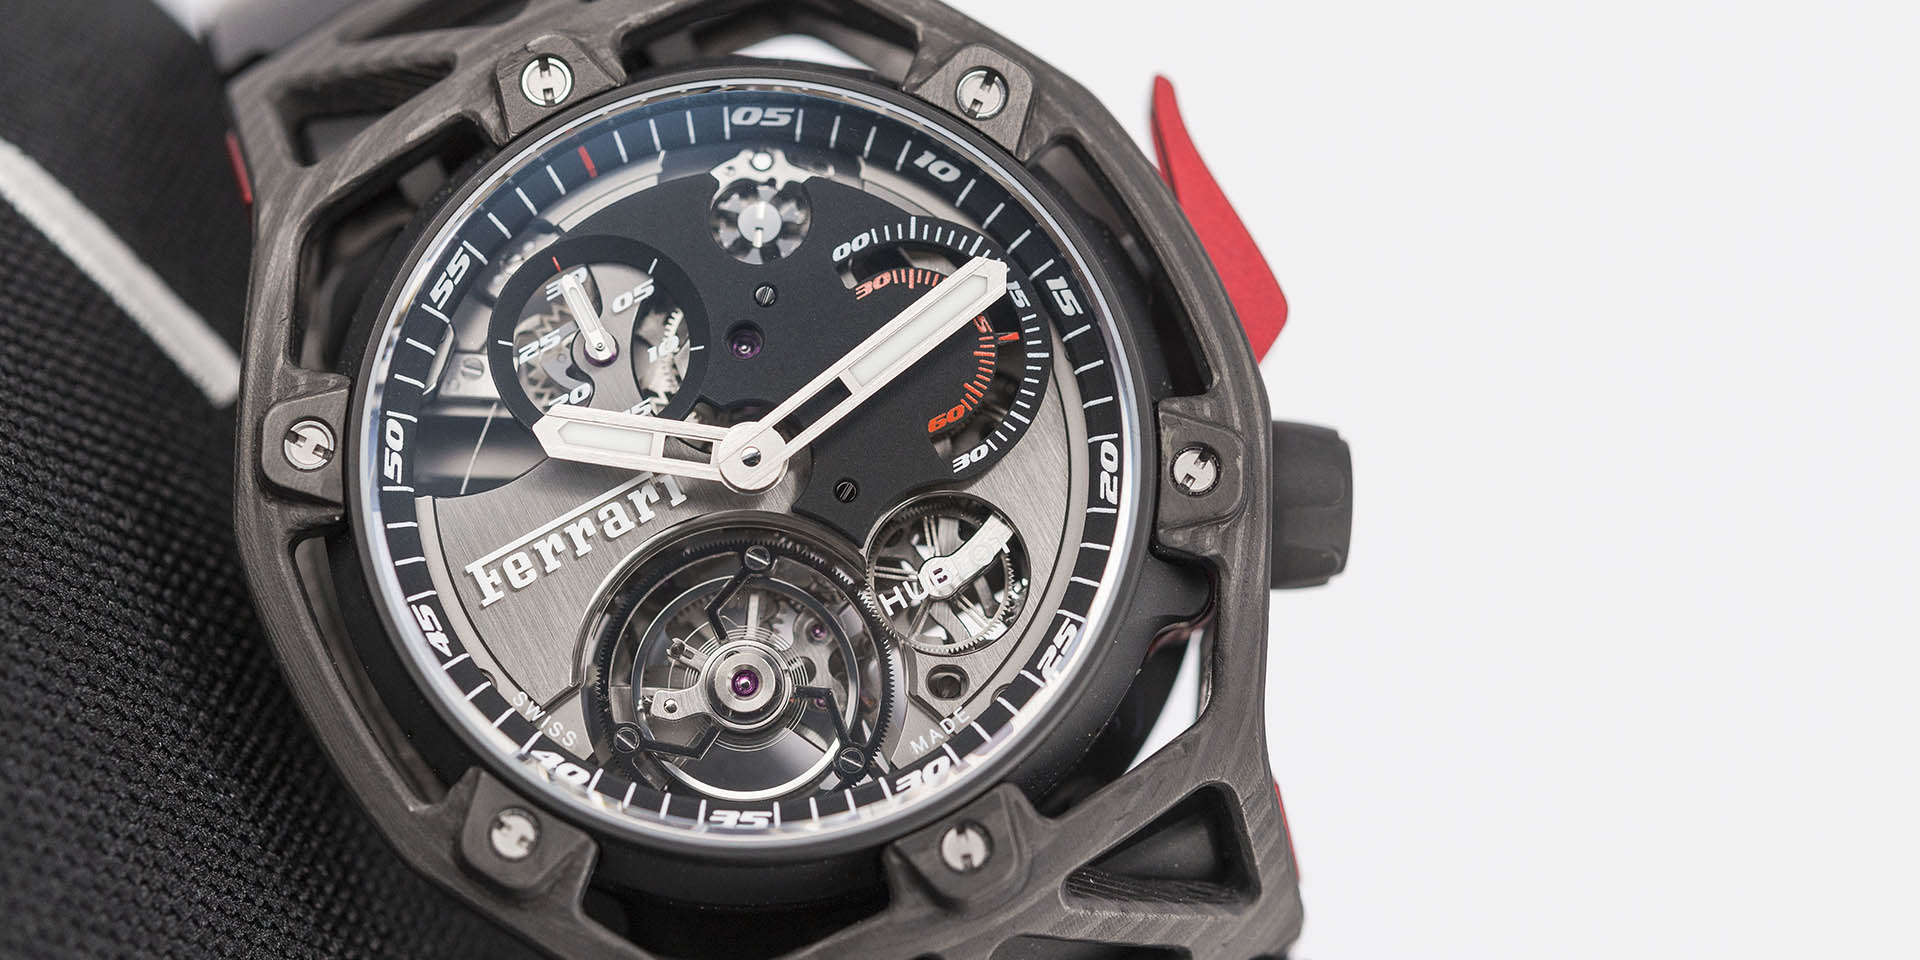 hublot-techframe-ferrari-70-years-tourbillon-chronograph-8-.jpg